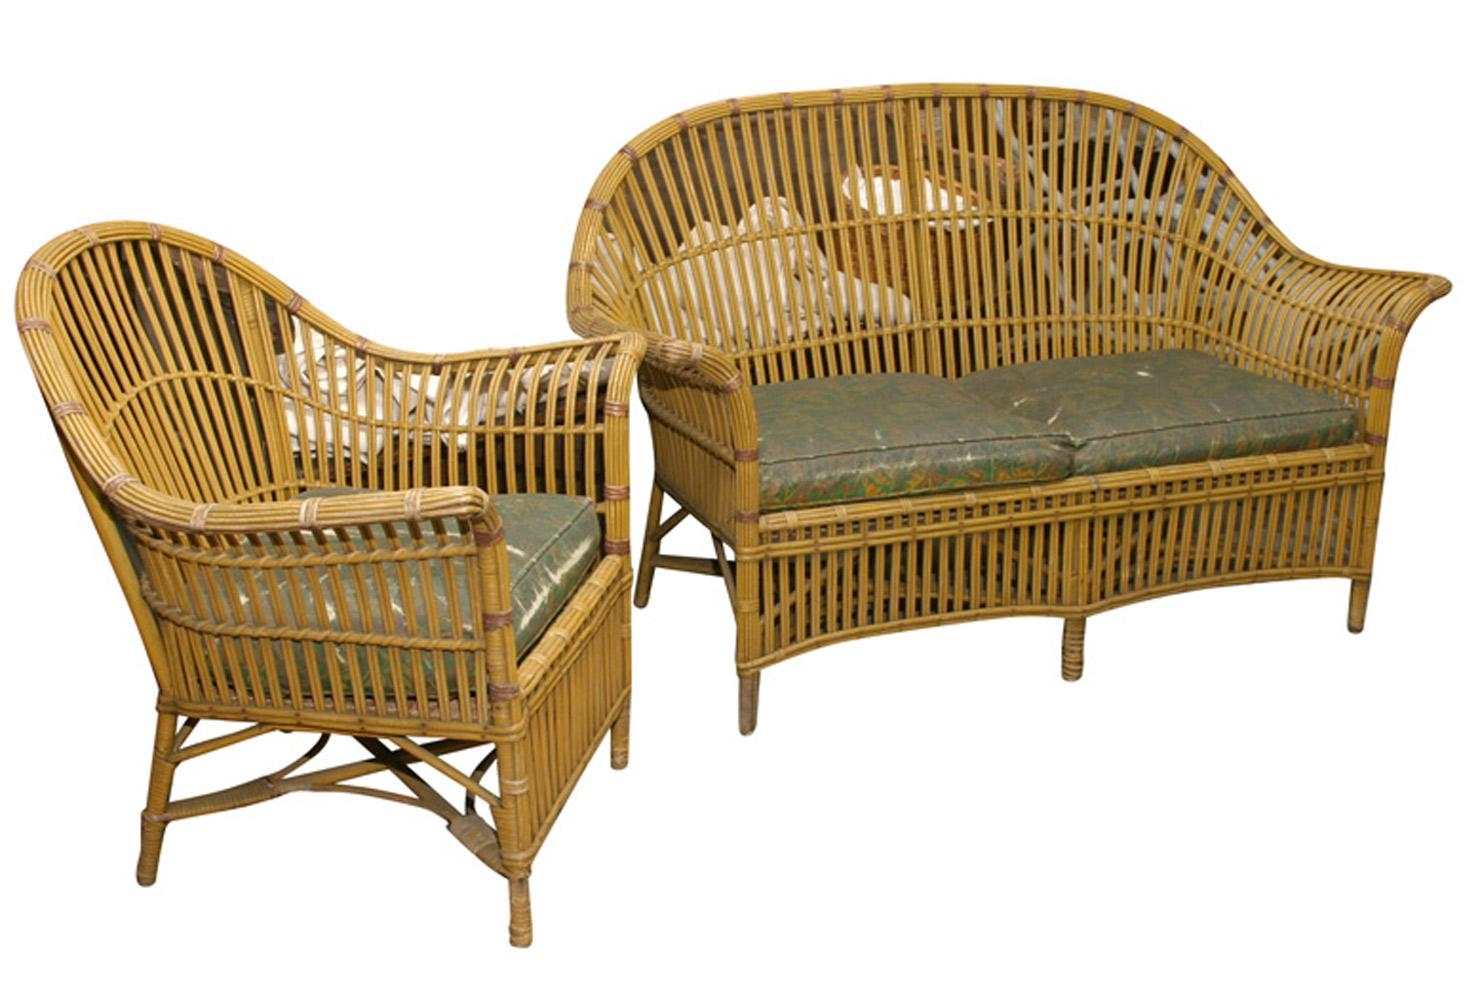 Vintage Sofa - Vintage Sofas - Vintage Style Sofas| Omero Home with regard to 1930S Sofas